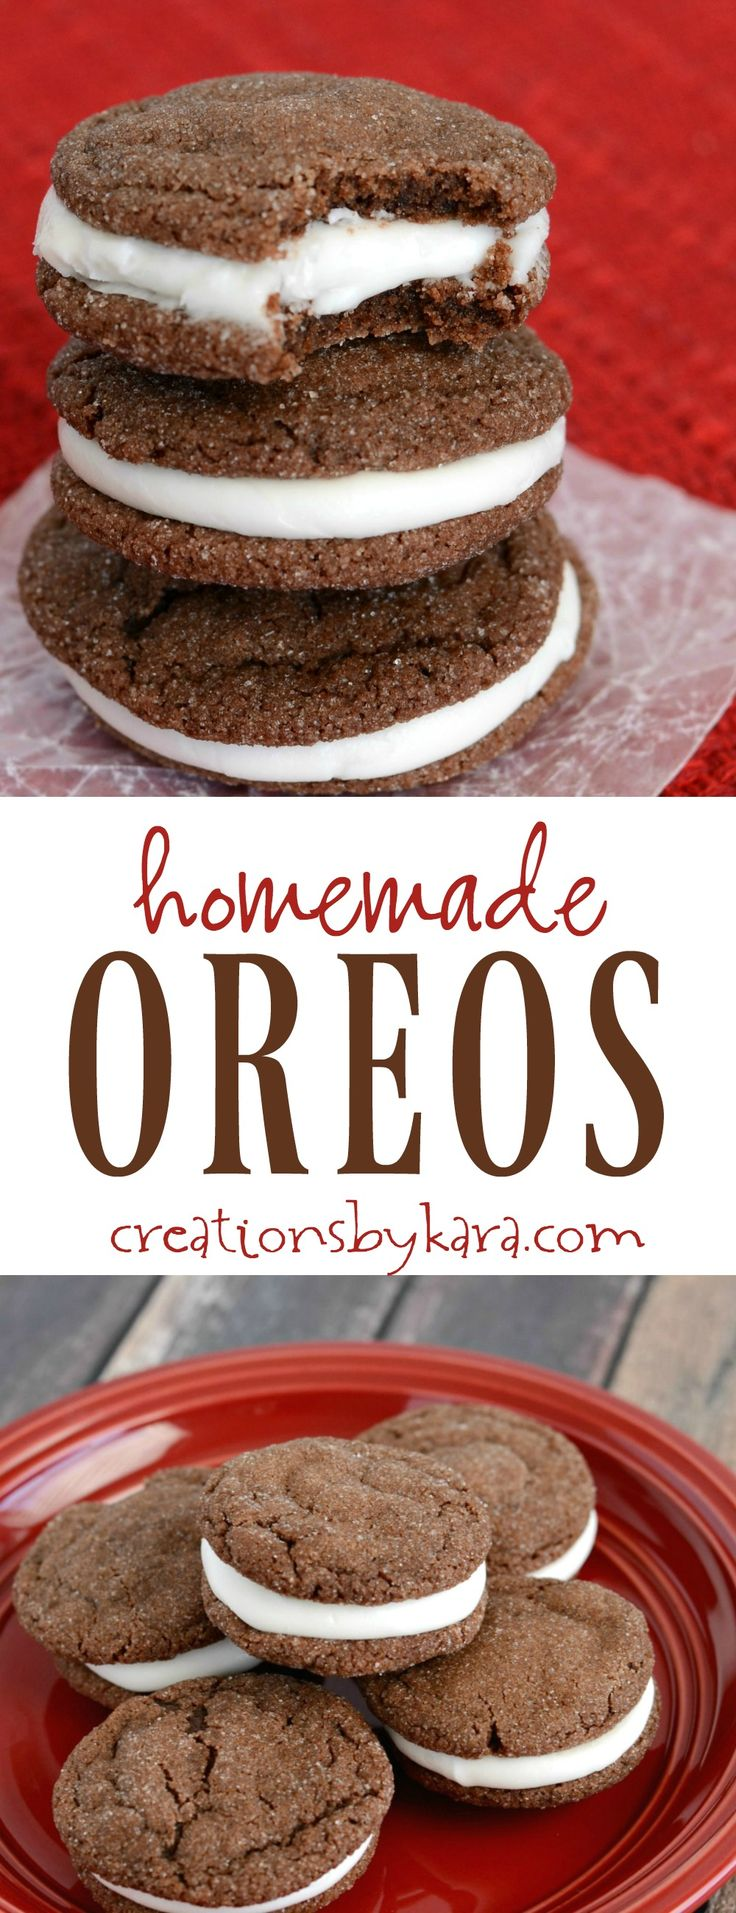 Soft, chewy, and filled with cream cheese frosting, these homemade Oreo Cookies are always a crowd pleaser. A favorite cookie recipe!